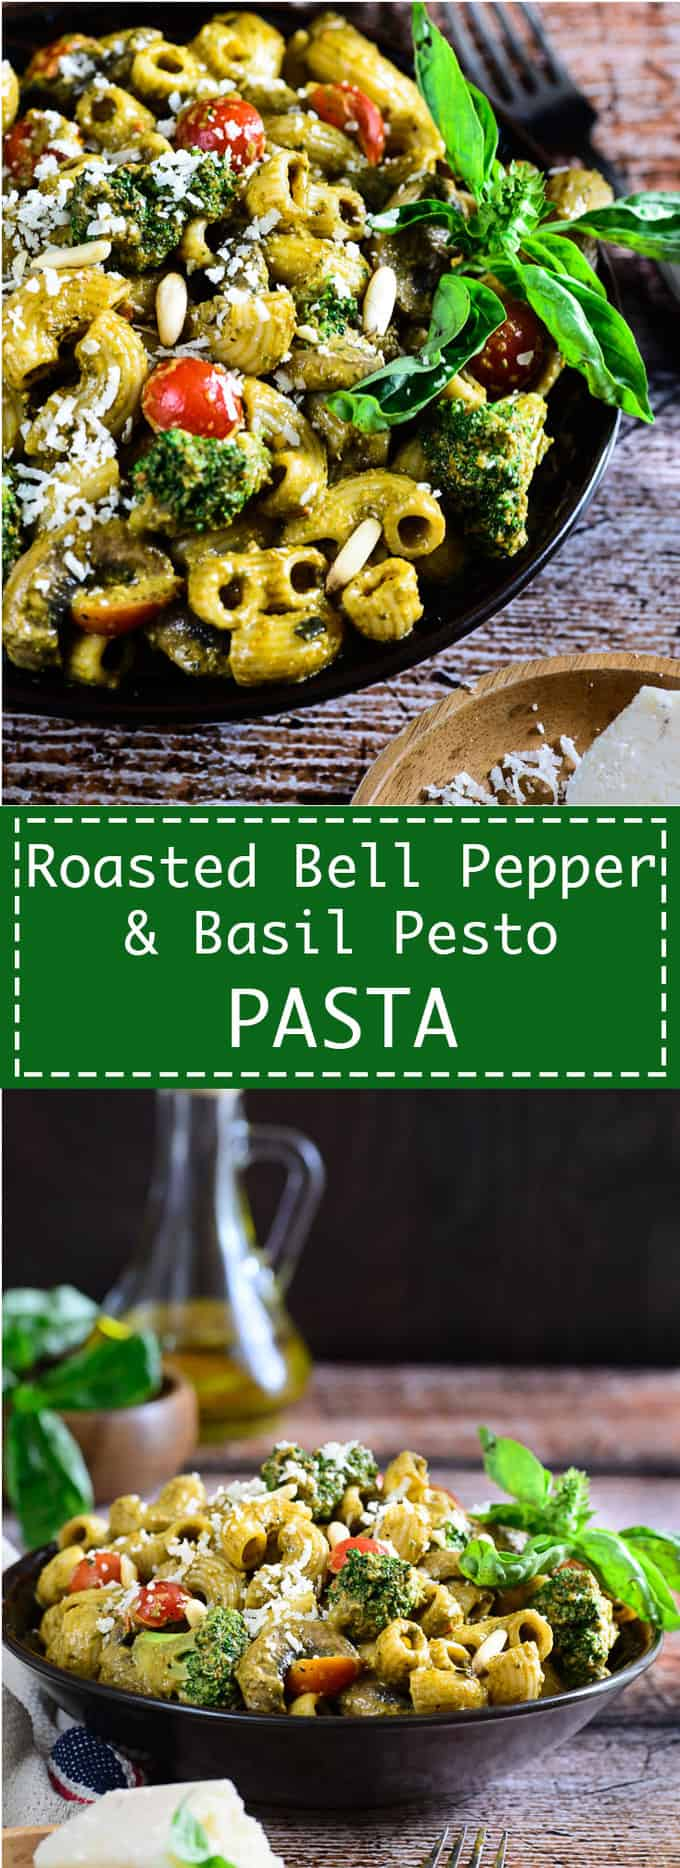 Roasted Bell Pepper Pasta